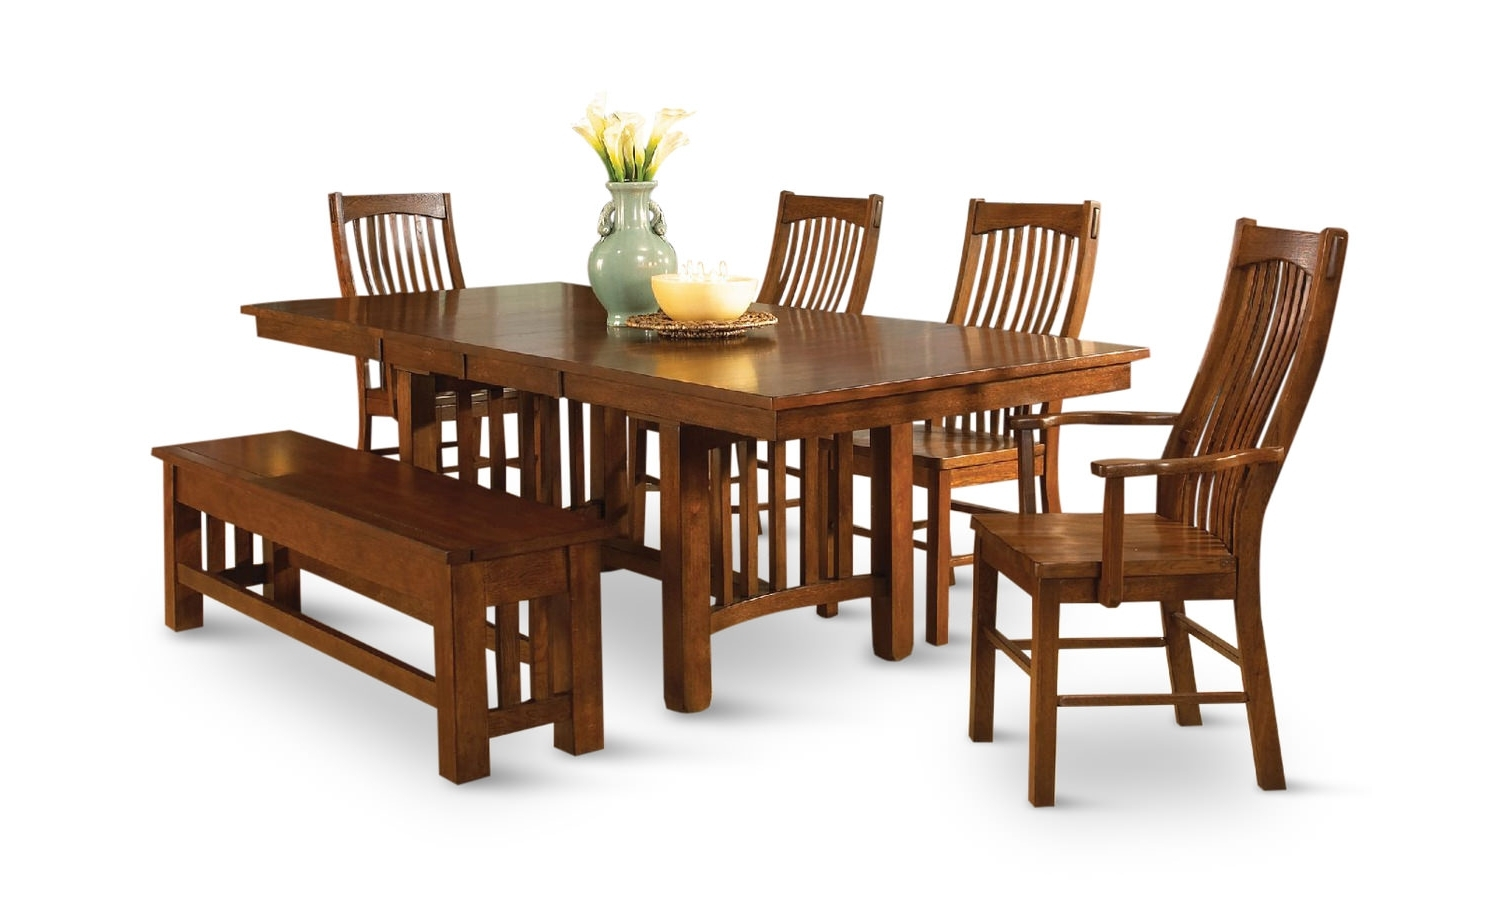 Hom Furniture With Regard To Newest Oak Dining Tables And Chairs (Gallery 6 of 25)